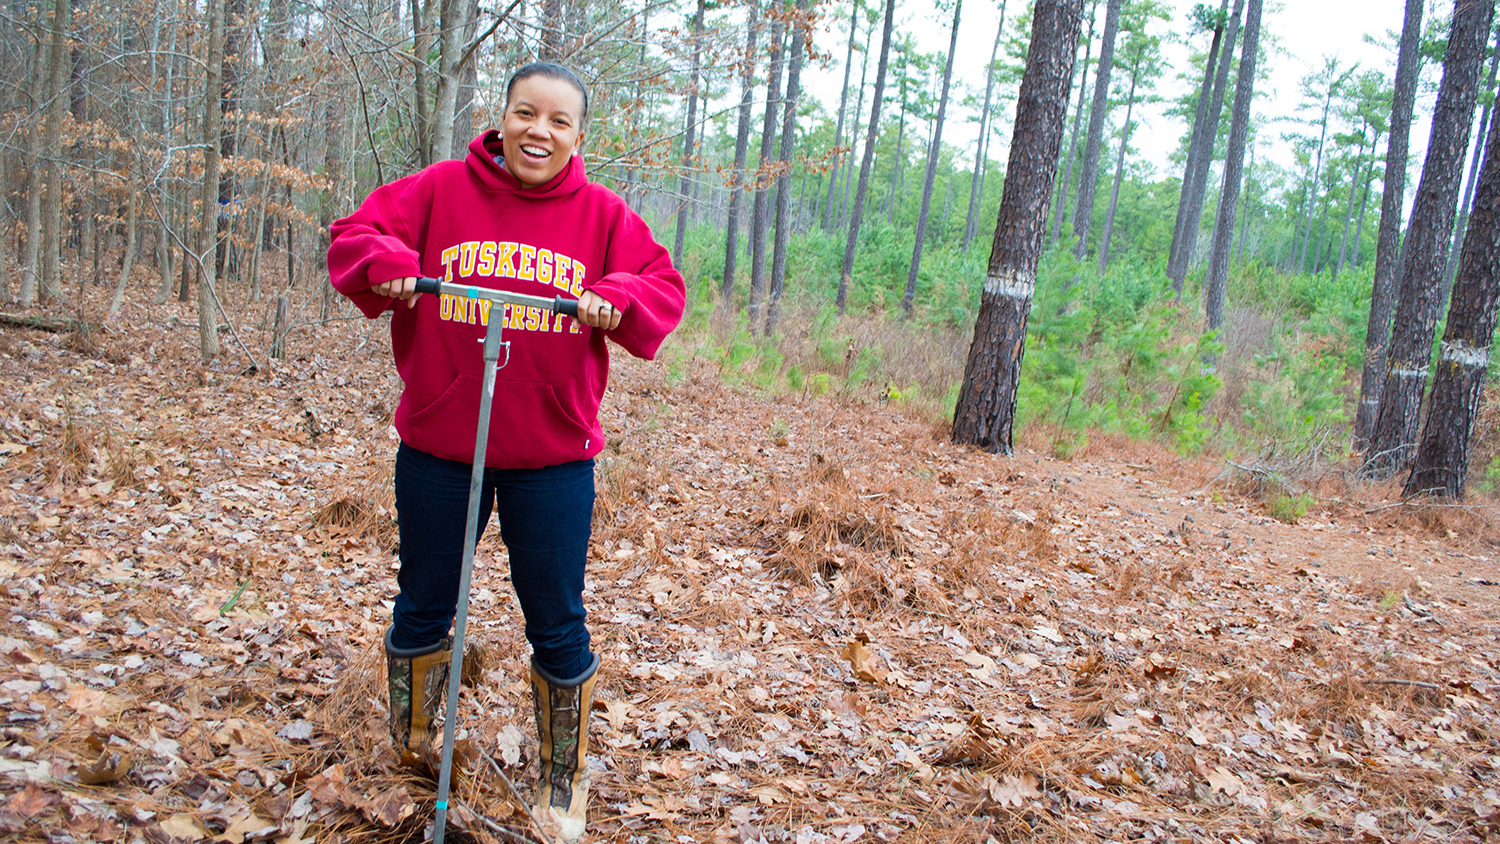 zakiya-1500 - Forestry Prof for Diversity Efforts - Forestry and Environmental Resources NC State University